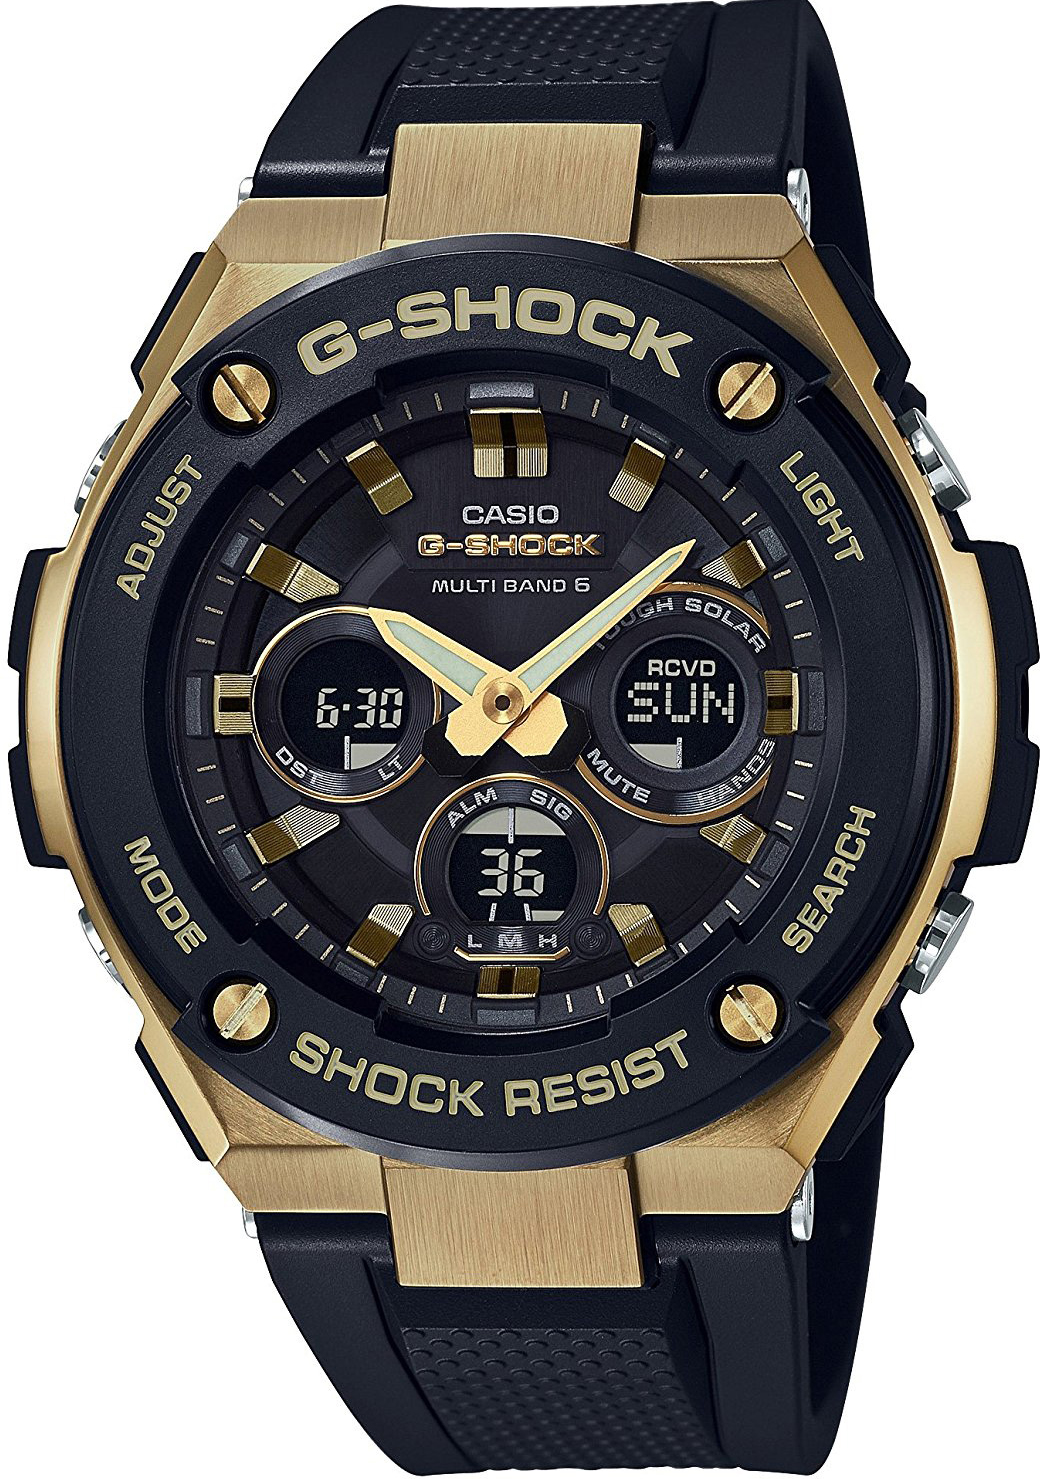 Casio G-shock G-Steel GST-W300G-1A9